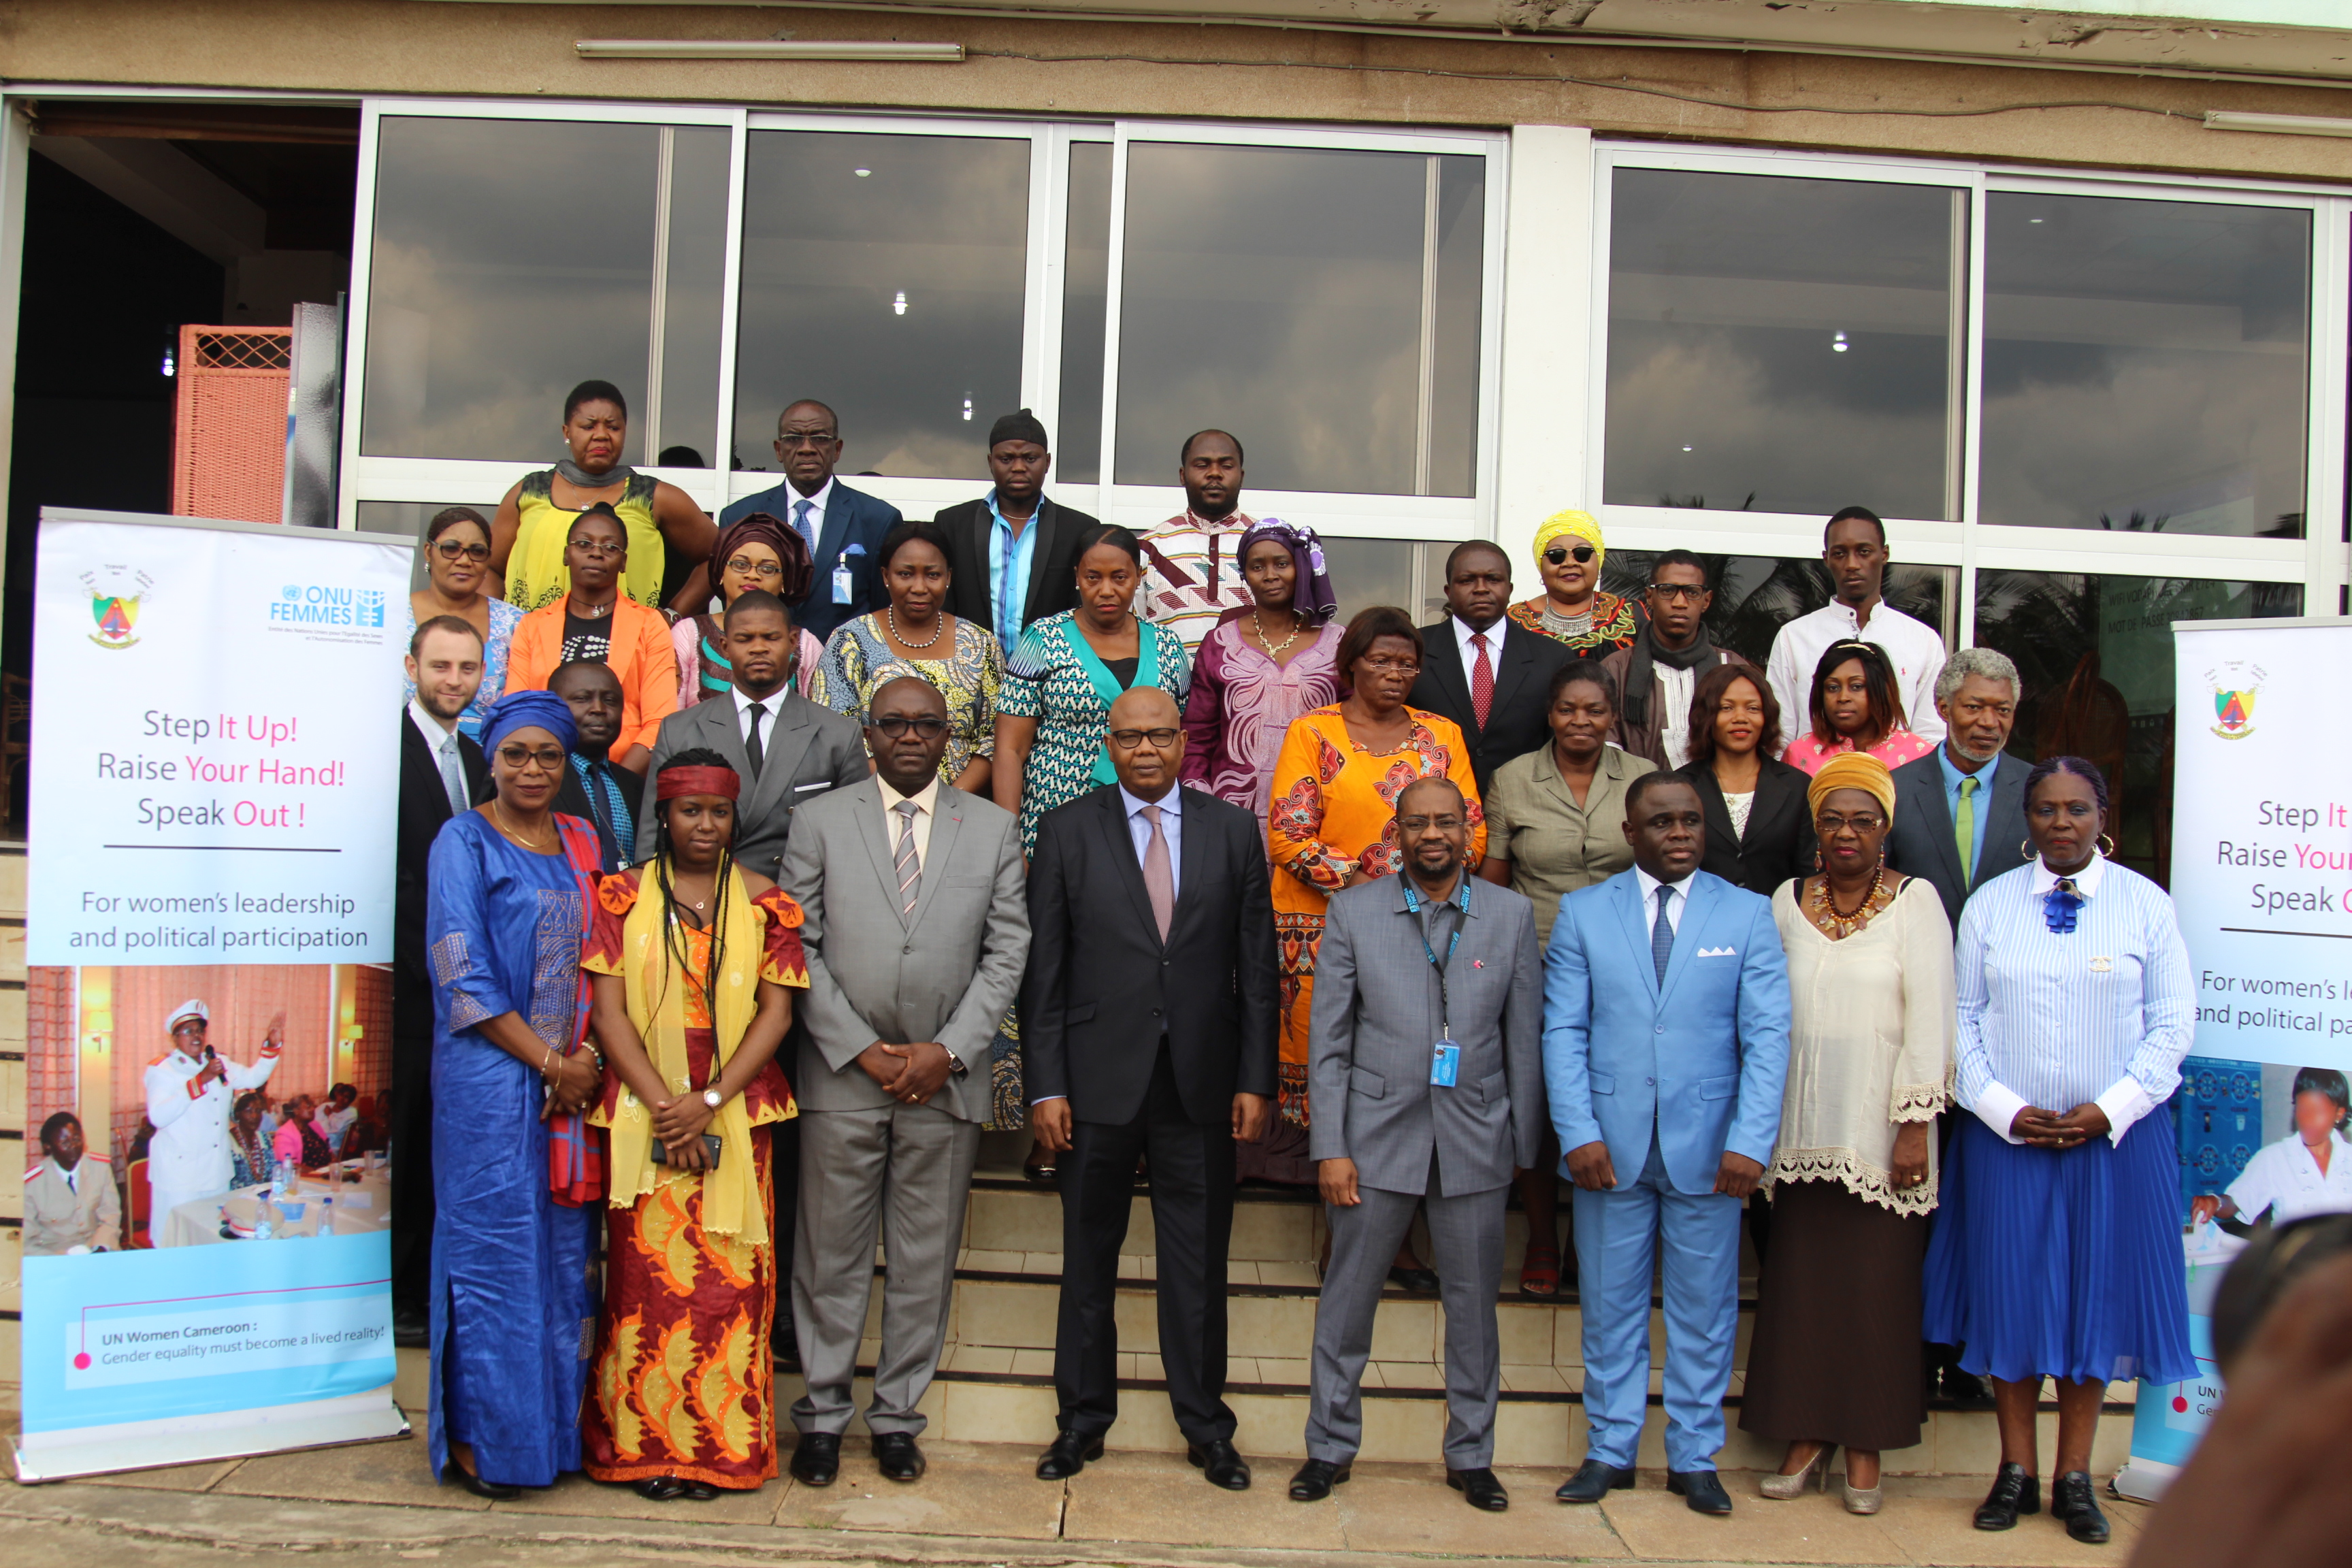 Representatives of UN agencies, leaders of political parties and other elections stakeholders attending the seminar. Photo credit; Teclaire Same, UN women